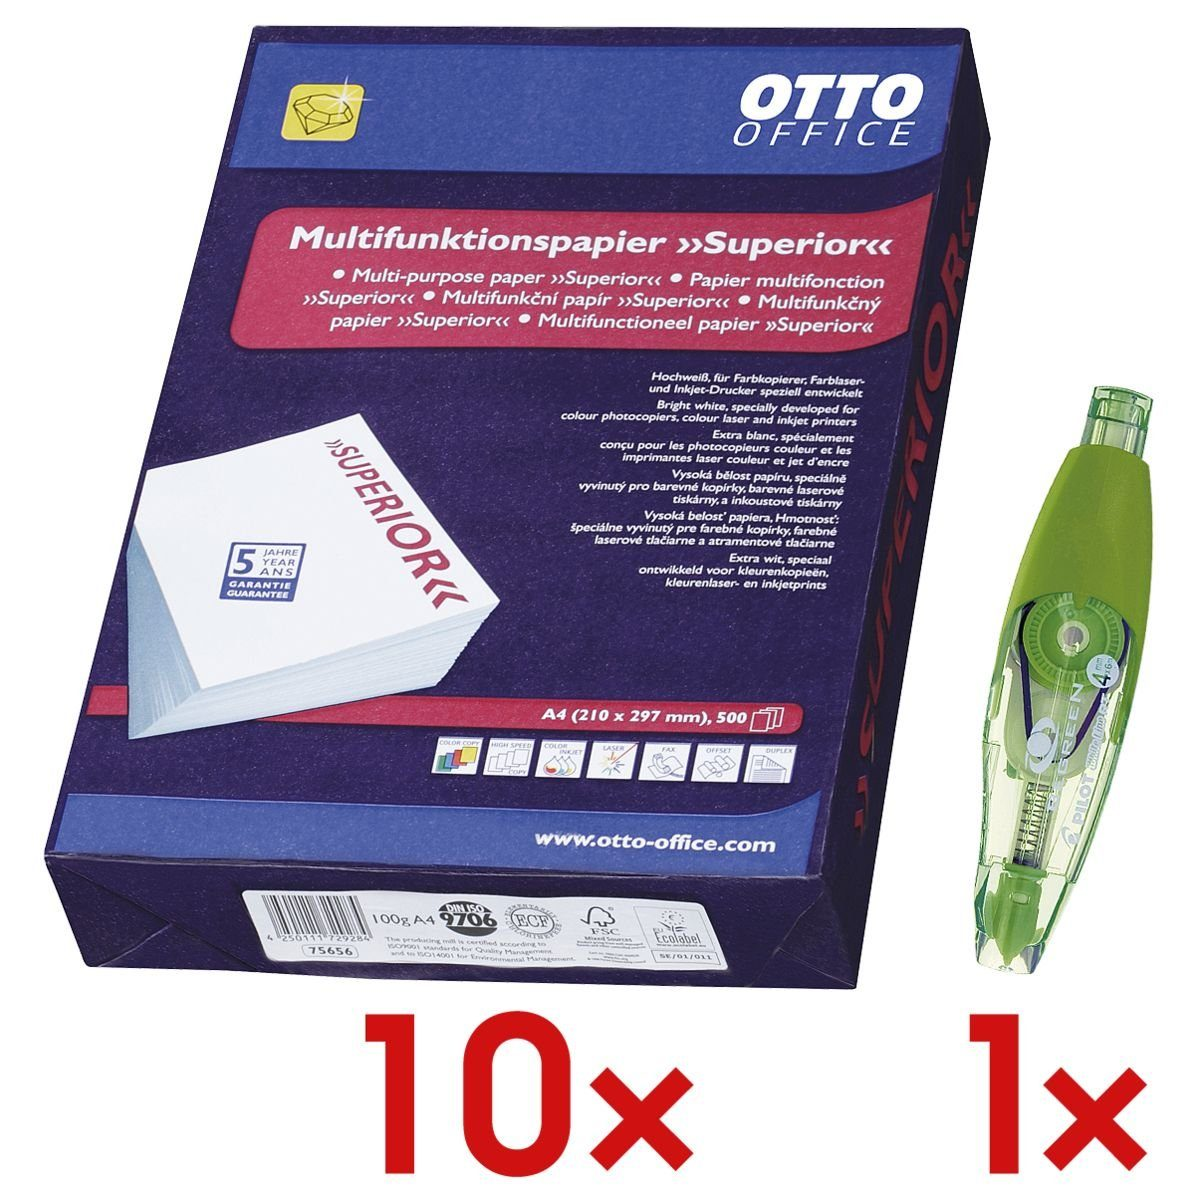 OTTOOFFICE PREMIUM 10 Pack Mult... »Superior« 1 Set